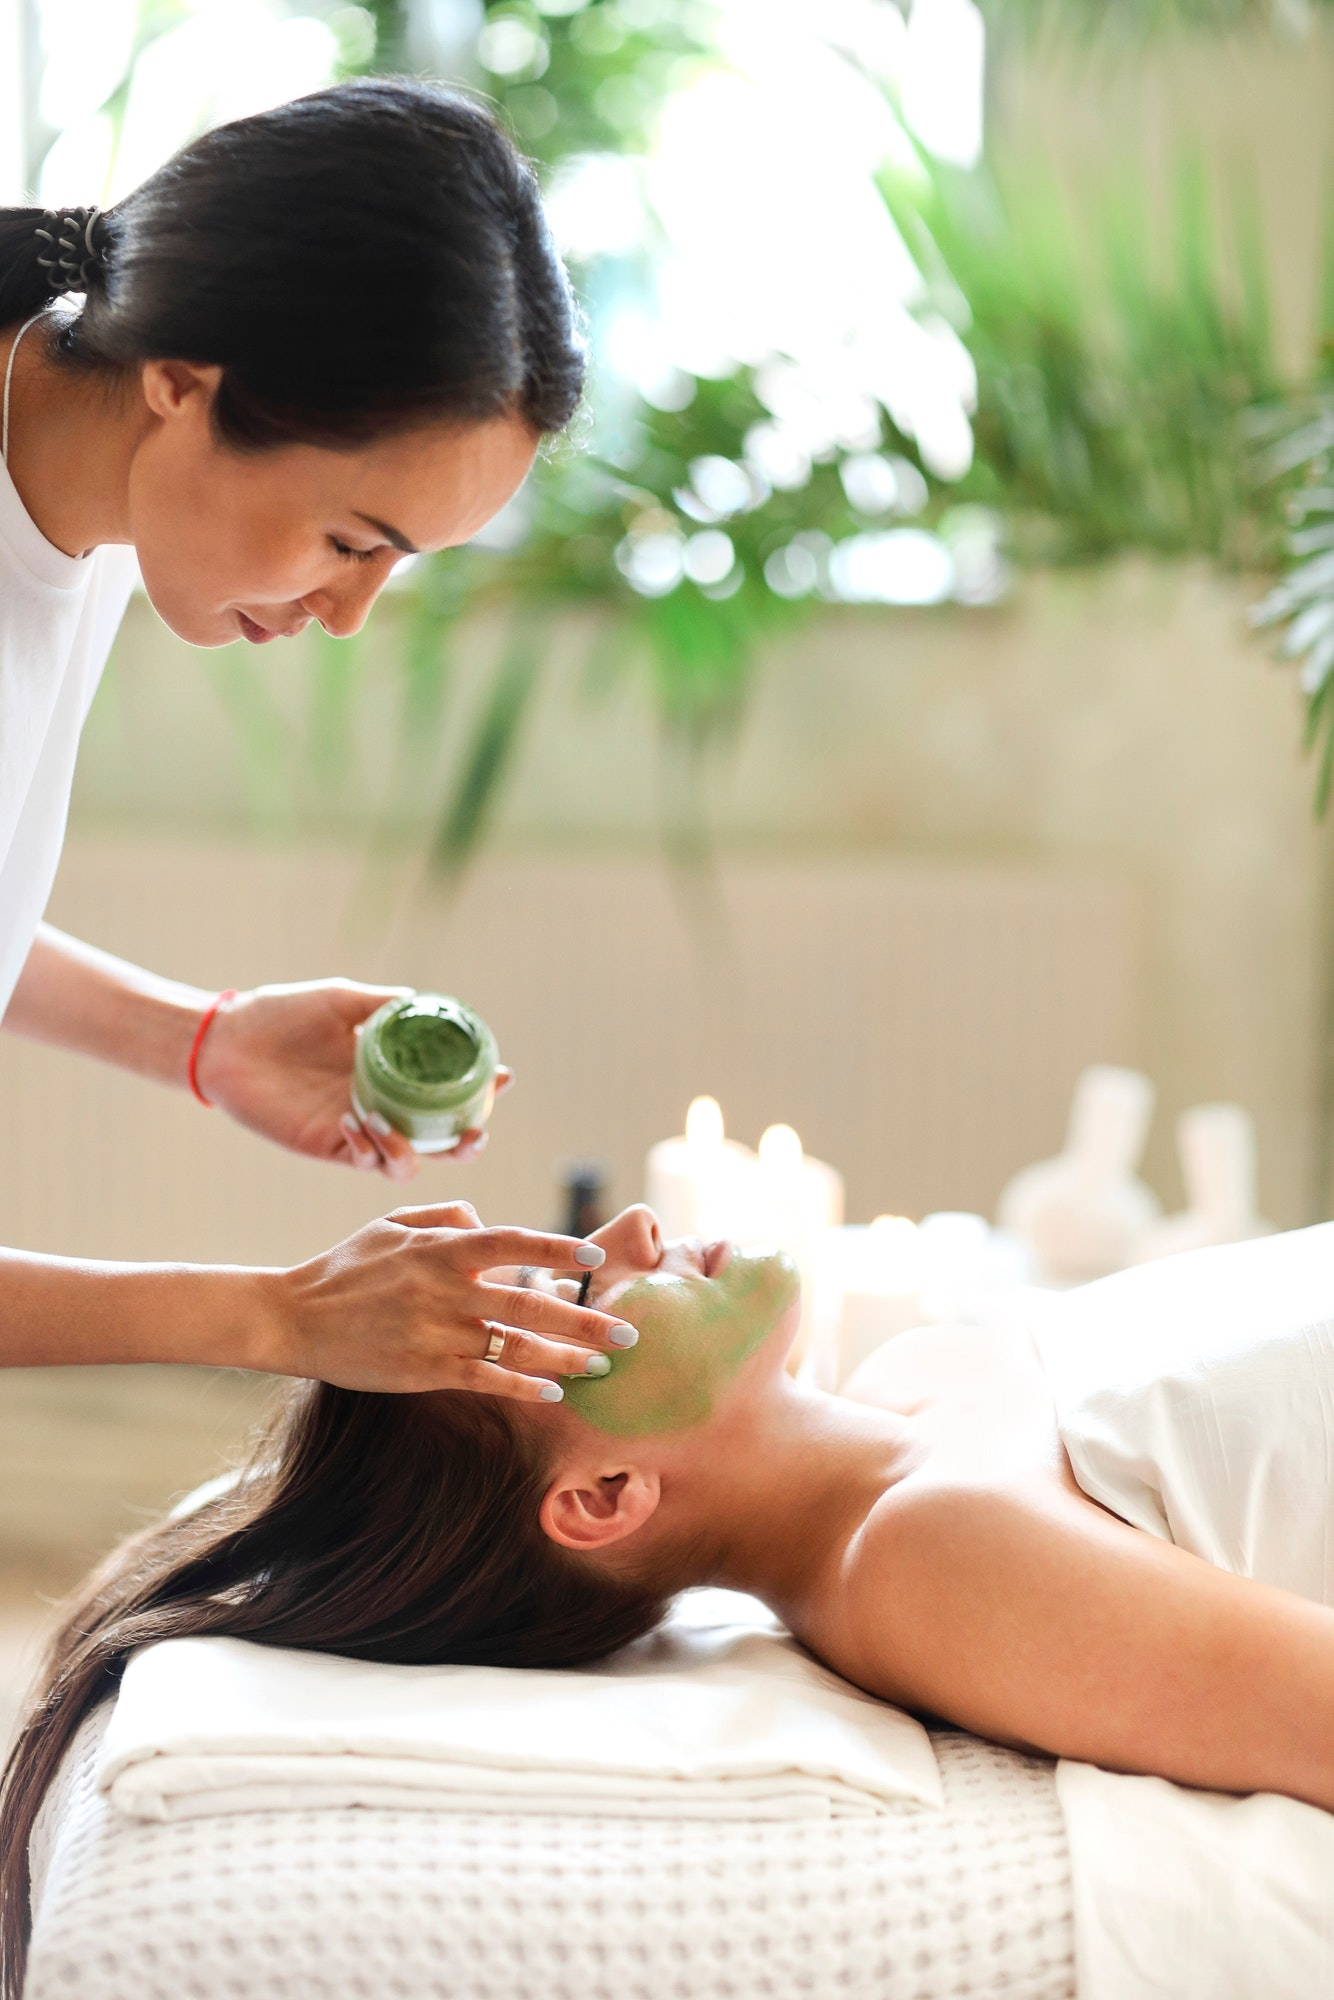 beautiful-relaxed-woman-having-green-clay-face-mask-in-spa-salon.jpg